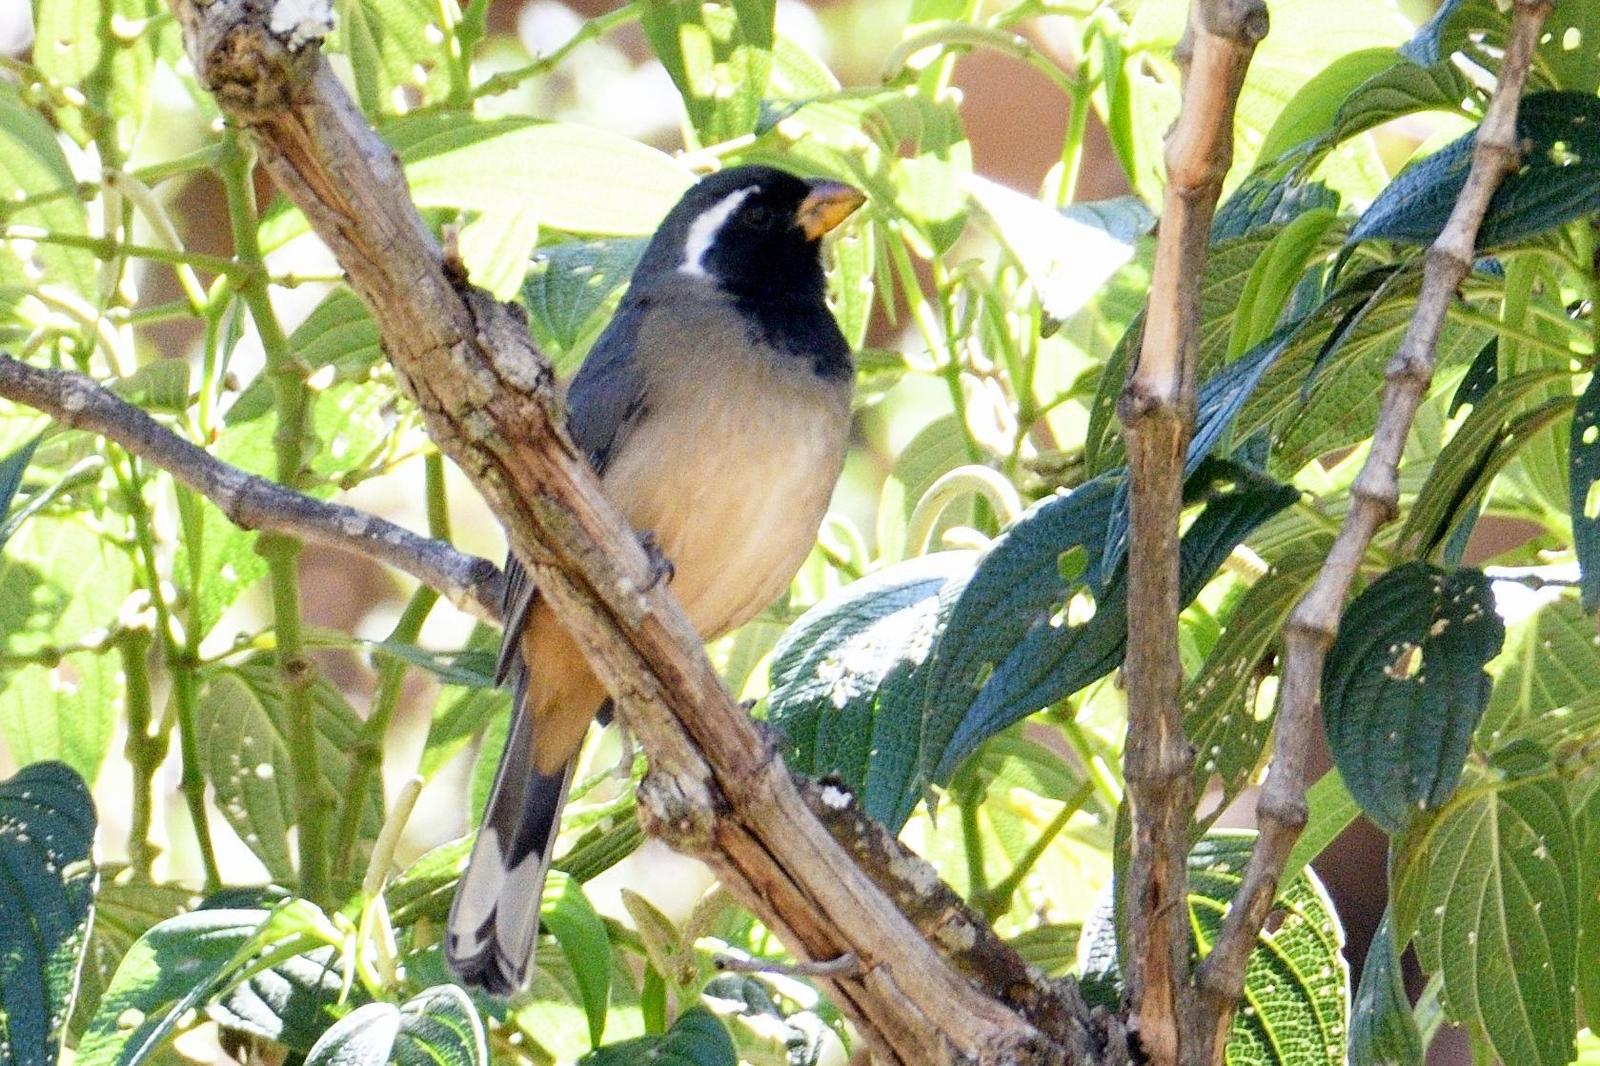 Green-winged Saltator Photo by Ann Doty